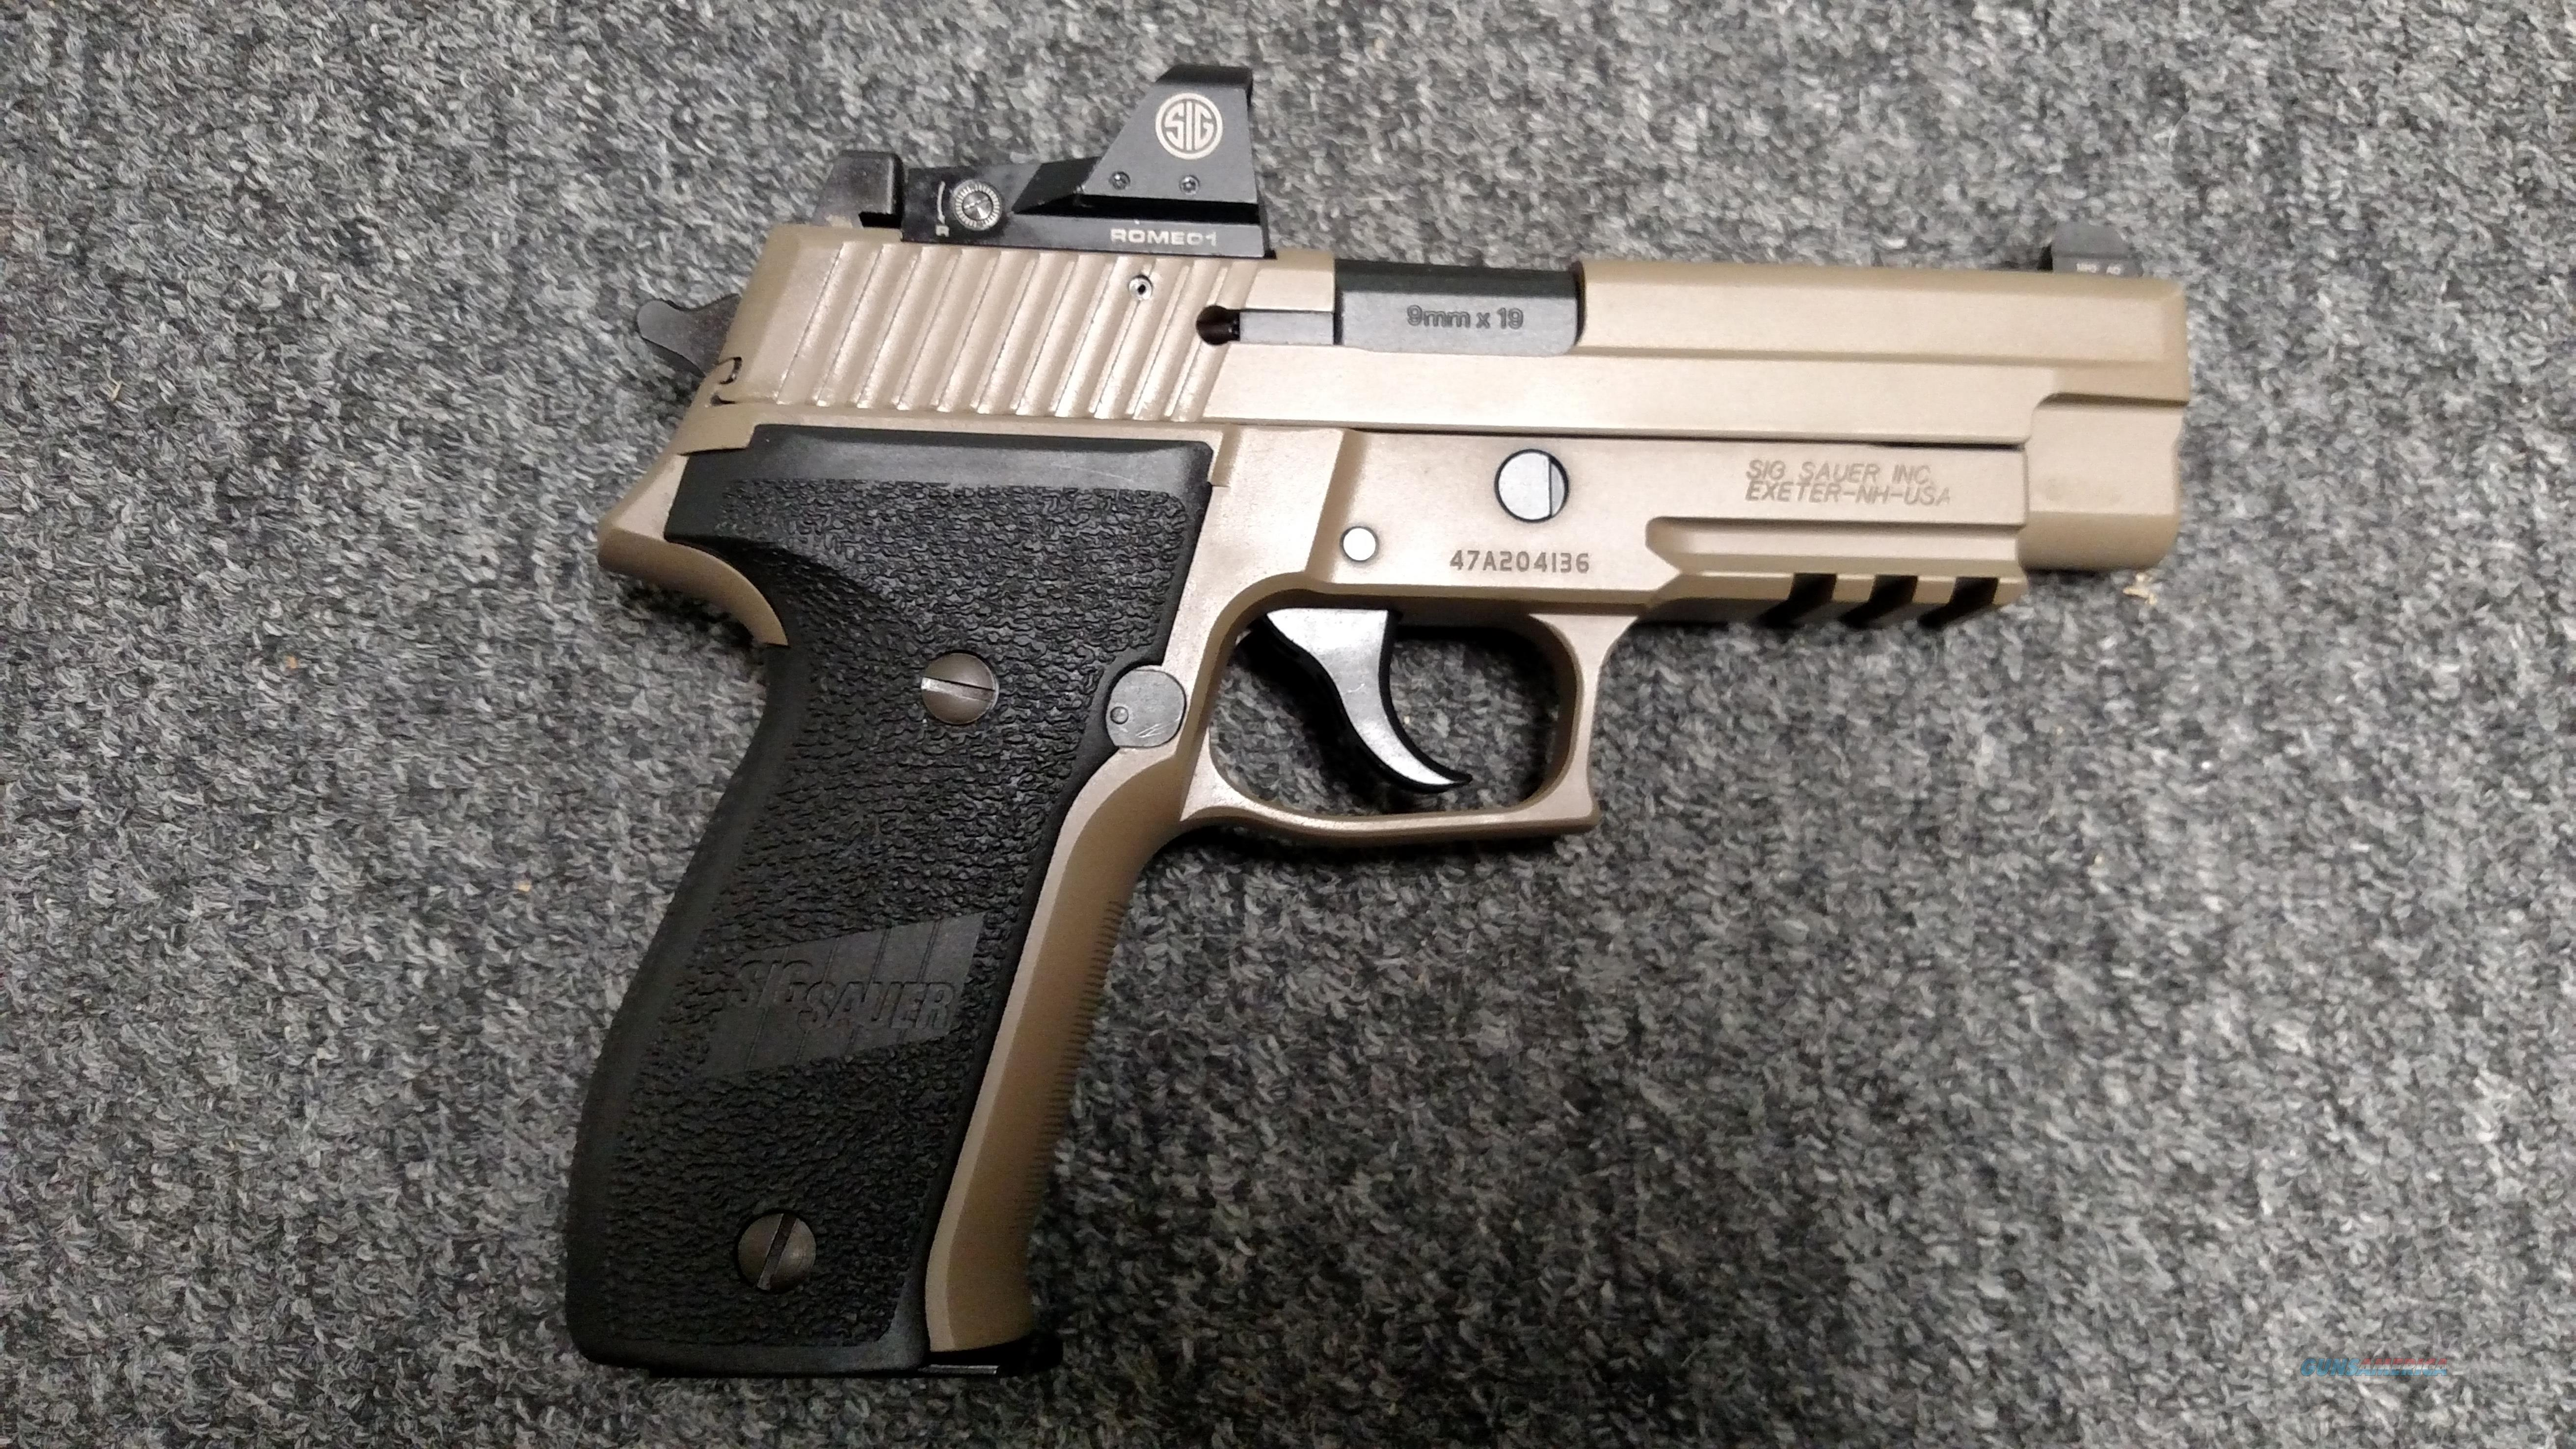 P226 MK25 RX (Flat Dark Earth, Red Dot Optic, Night Sights, 9mm)  Guns > Pistols > Sig - Sauer/Sigarms Pistols > P226